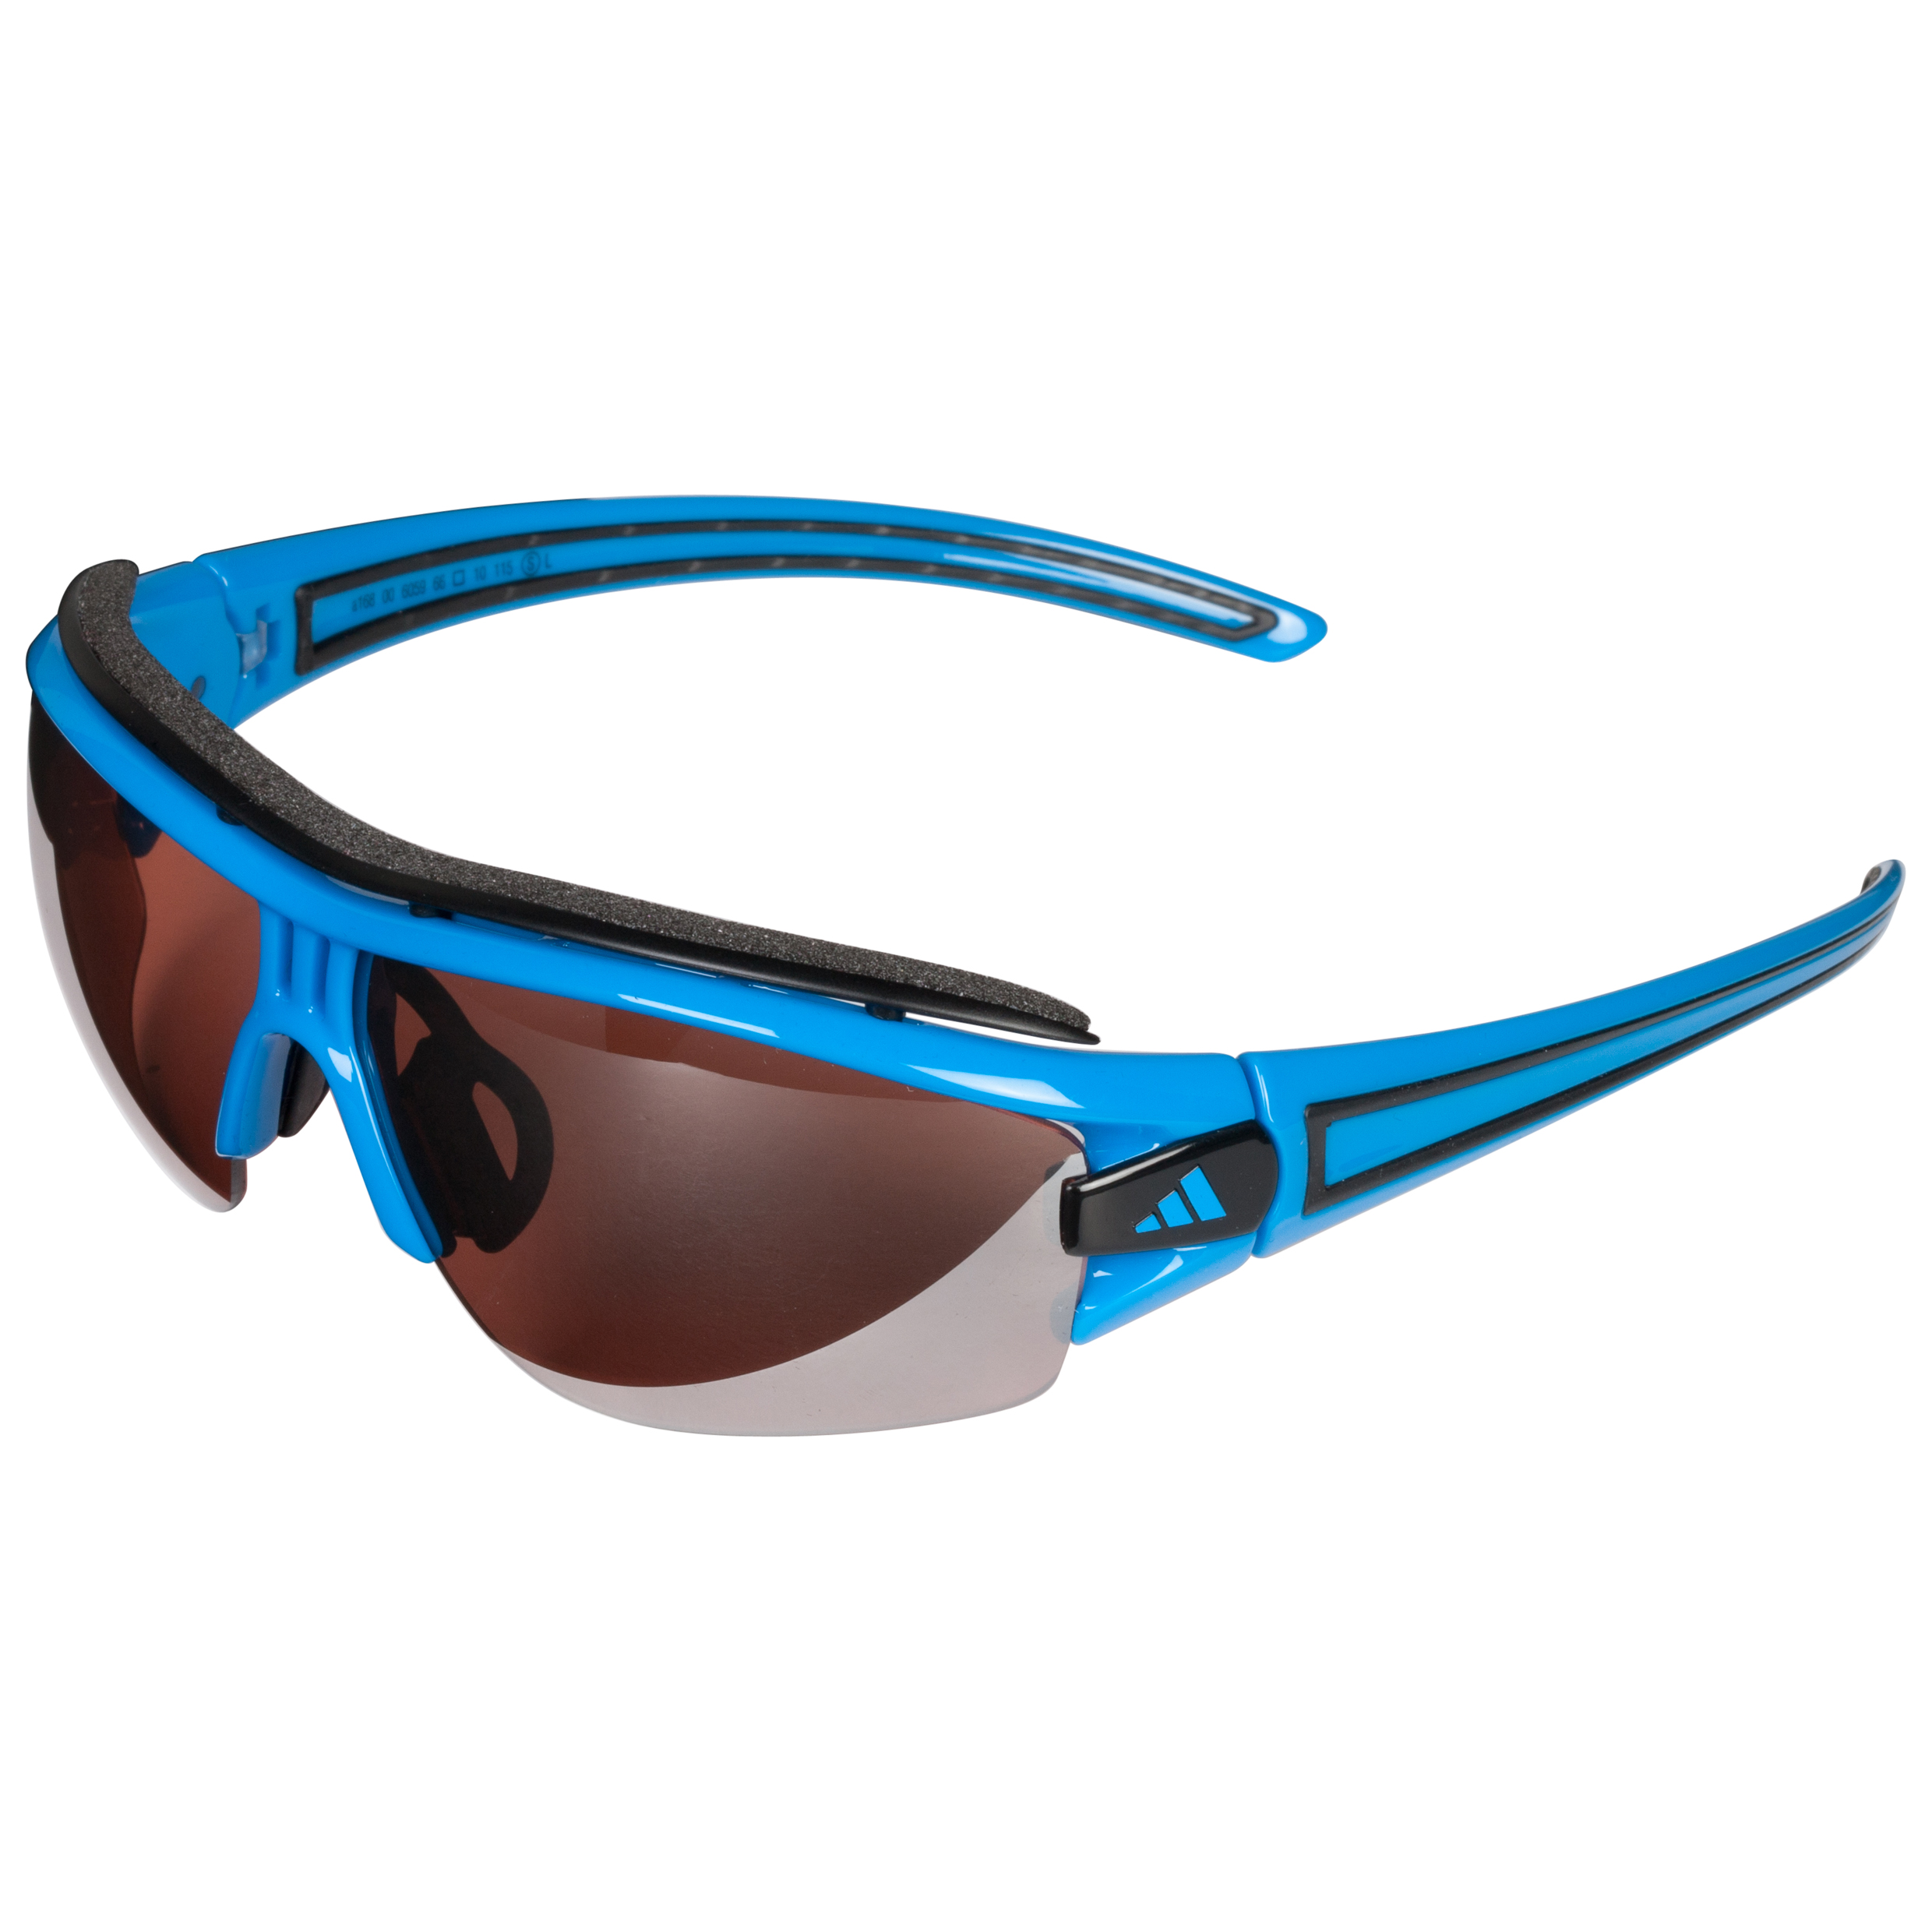 Adidas Evil Eye Halfrim Pro Sunglasses - Blue - Small